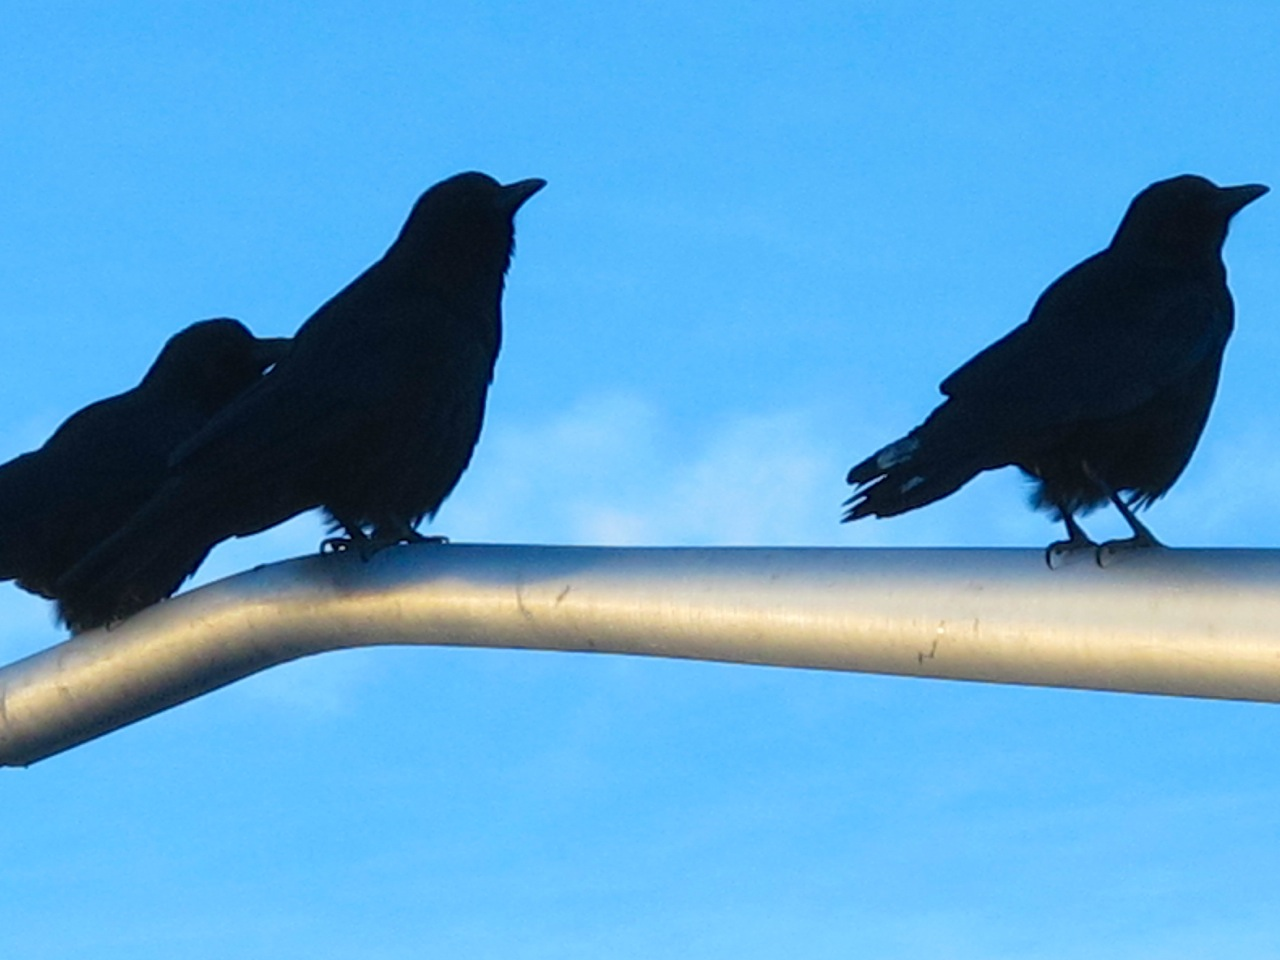 teenage crows/ hurl caws at winter-blue sky--/ stomachs grumbling